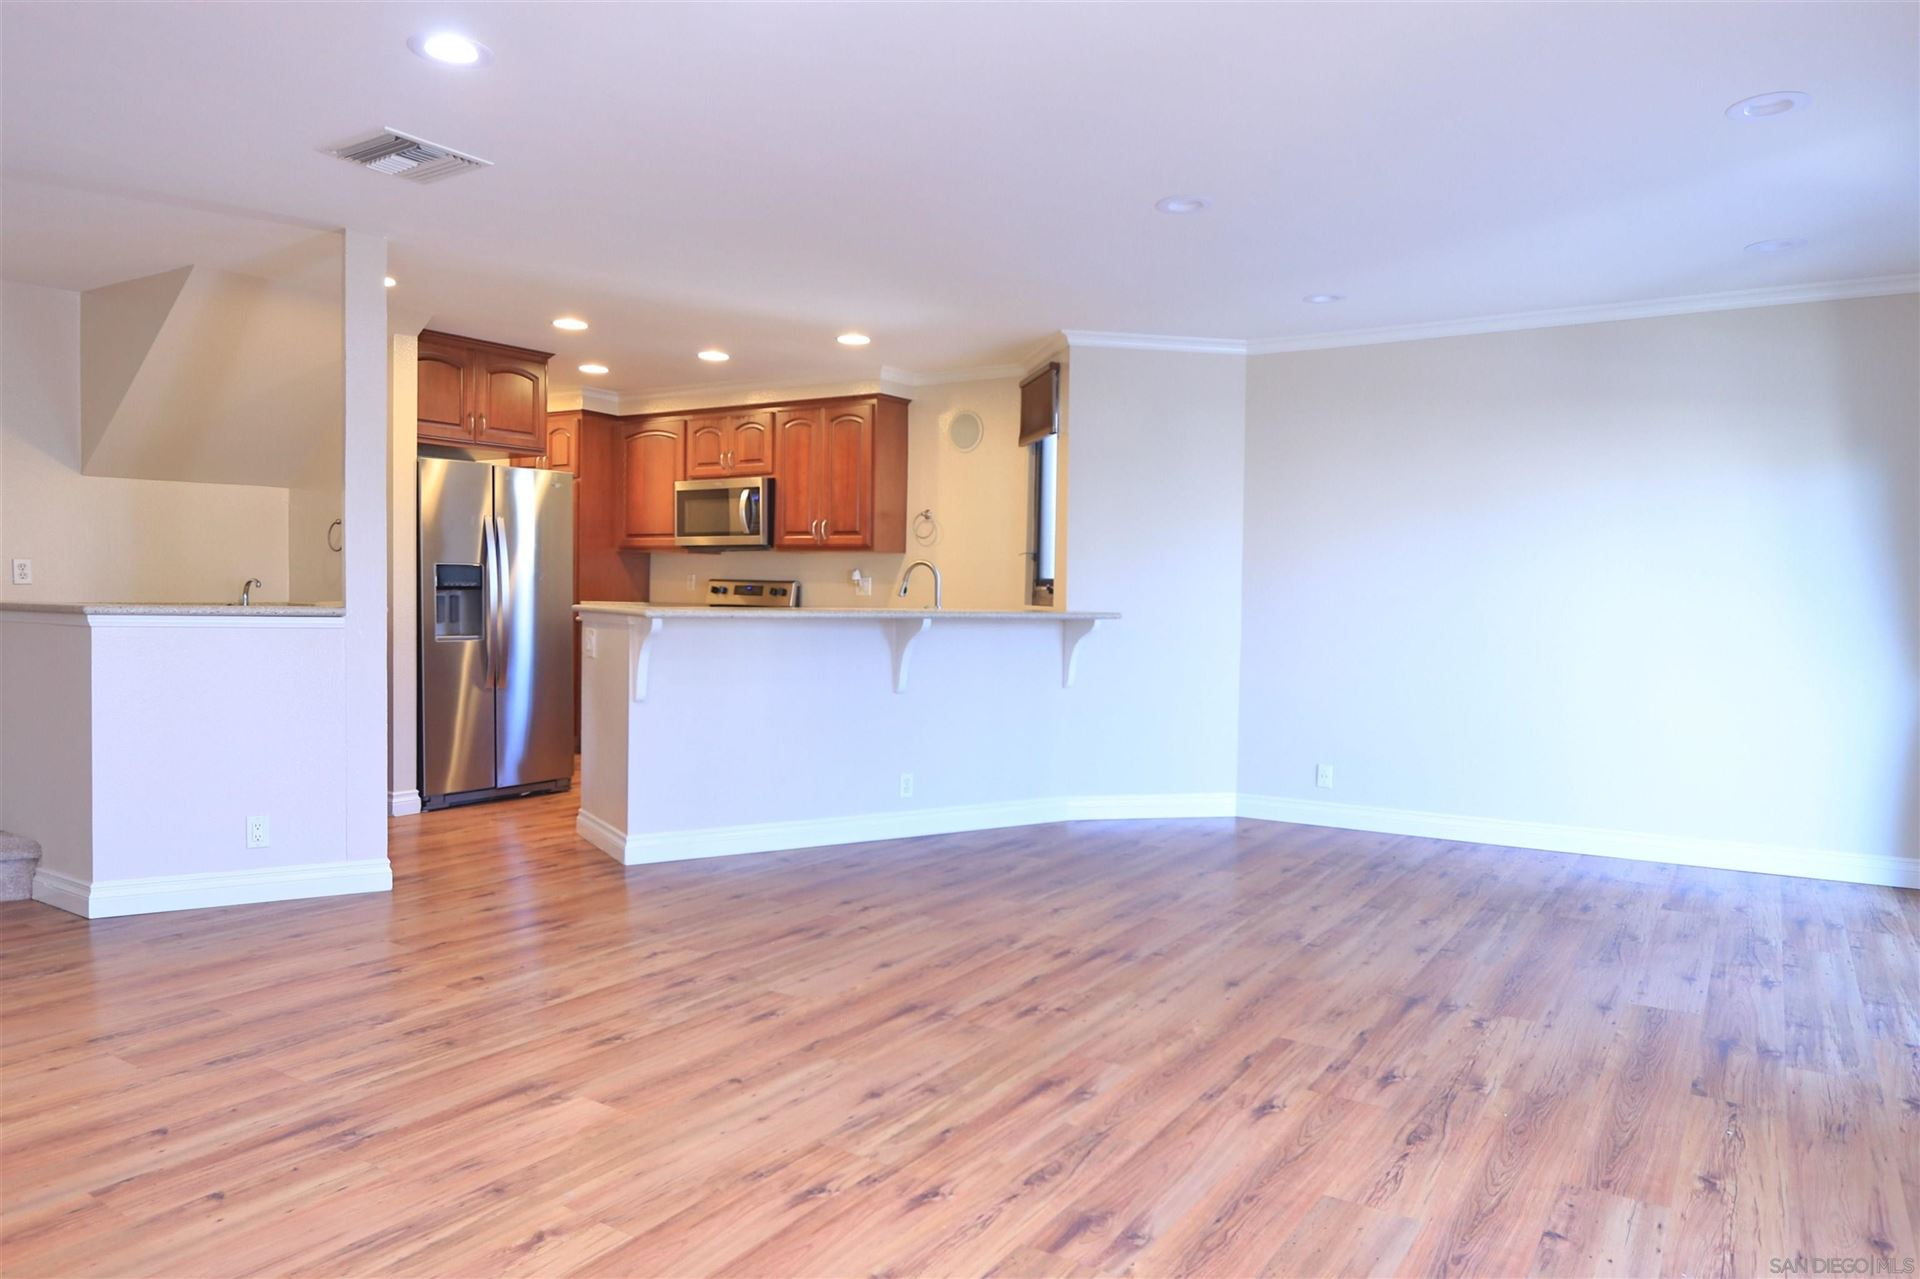 Photo of 3916 Voltaire St, San Diego, CA 92107 (MLS # 210026389)